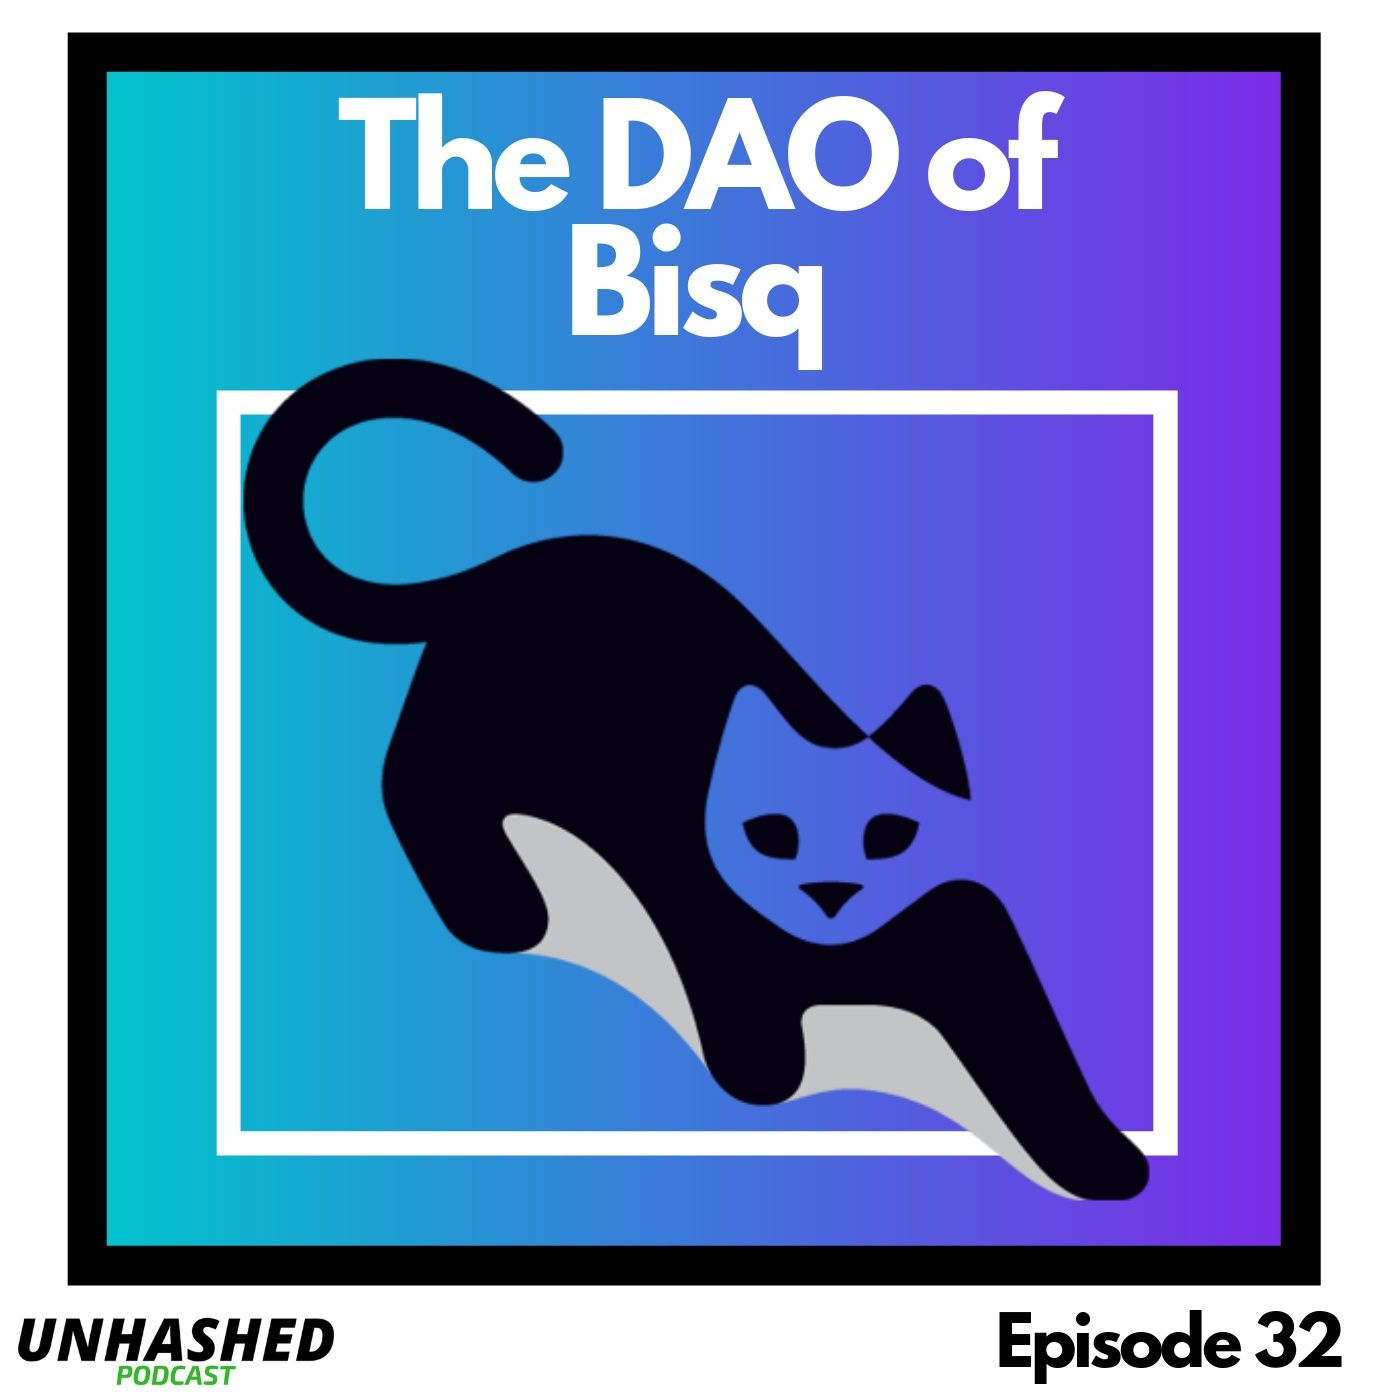 The DAO of Bisq